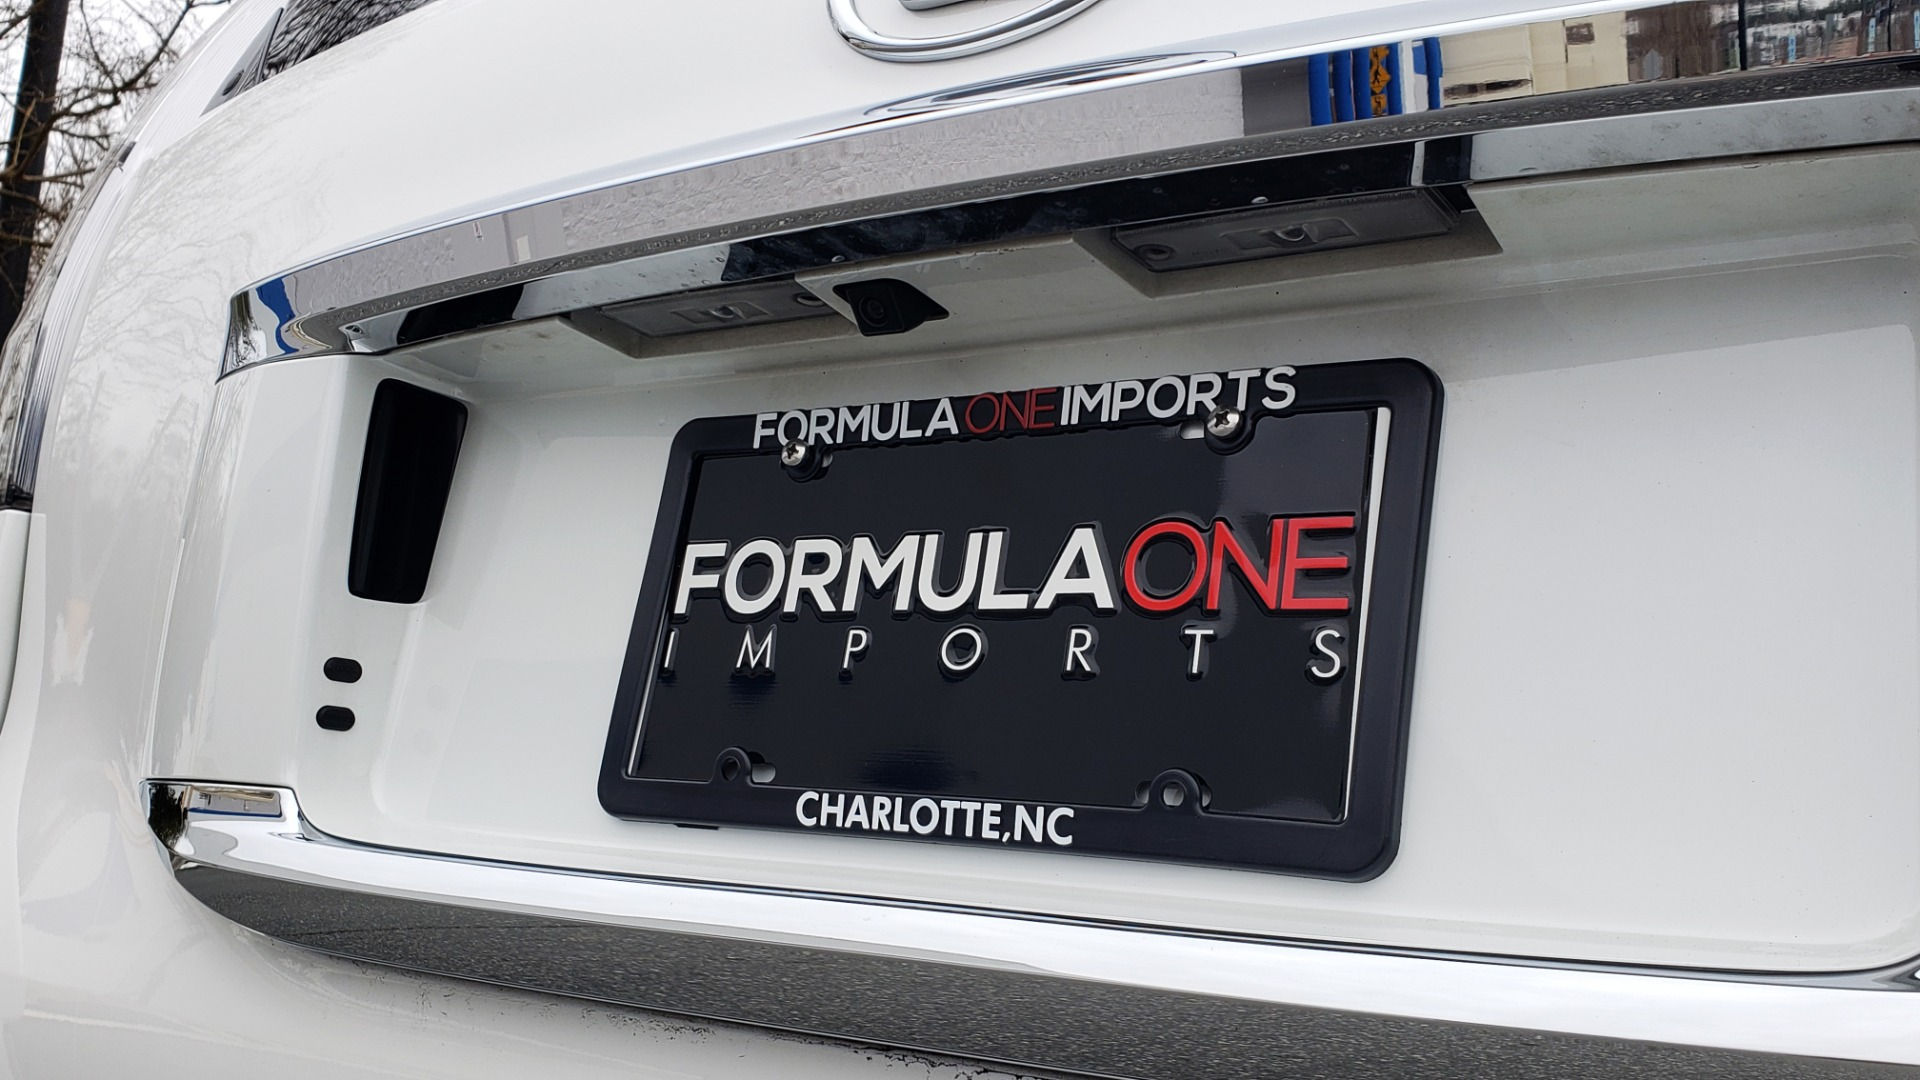 Used 2017 Lexus GX 460 4WD / NAV / VENT STS / SUNROOF / PARK ASST / BSM for sale Sold at Formula Imports in Charlotte NC 28227 35